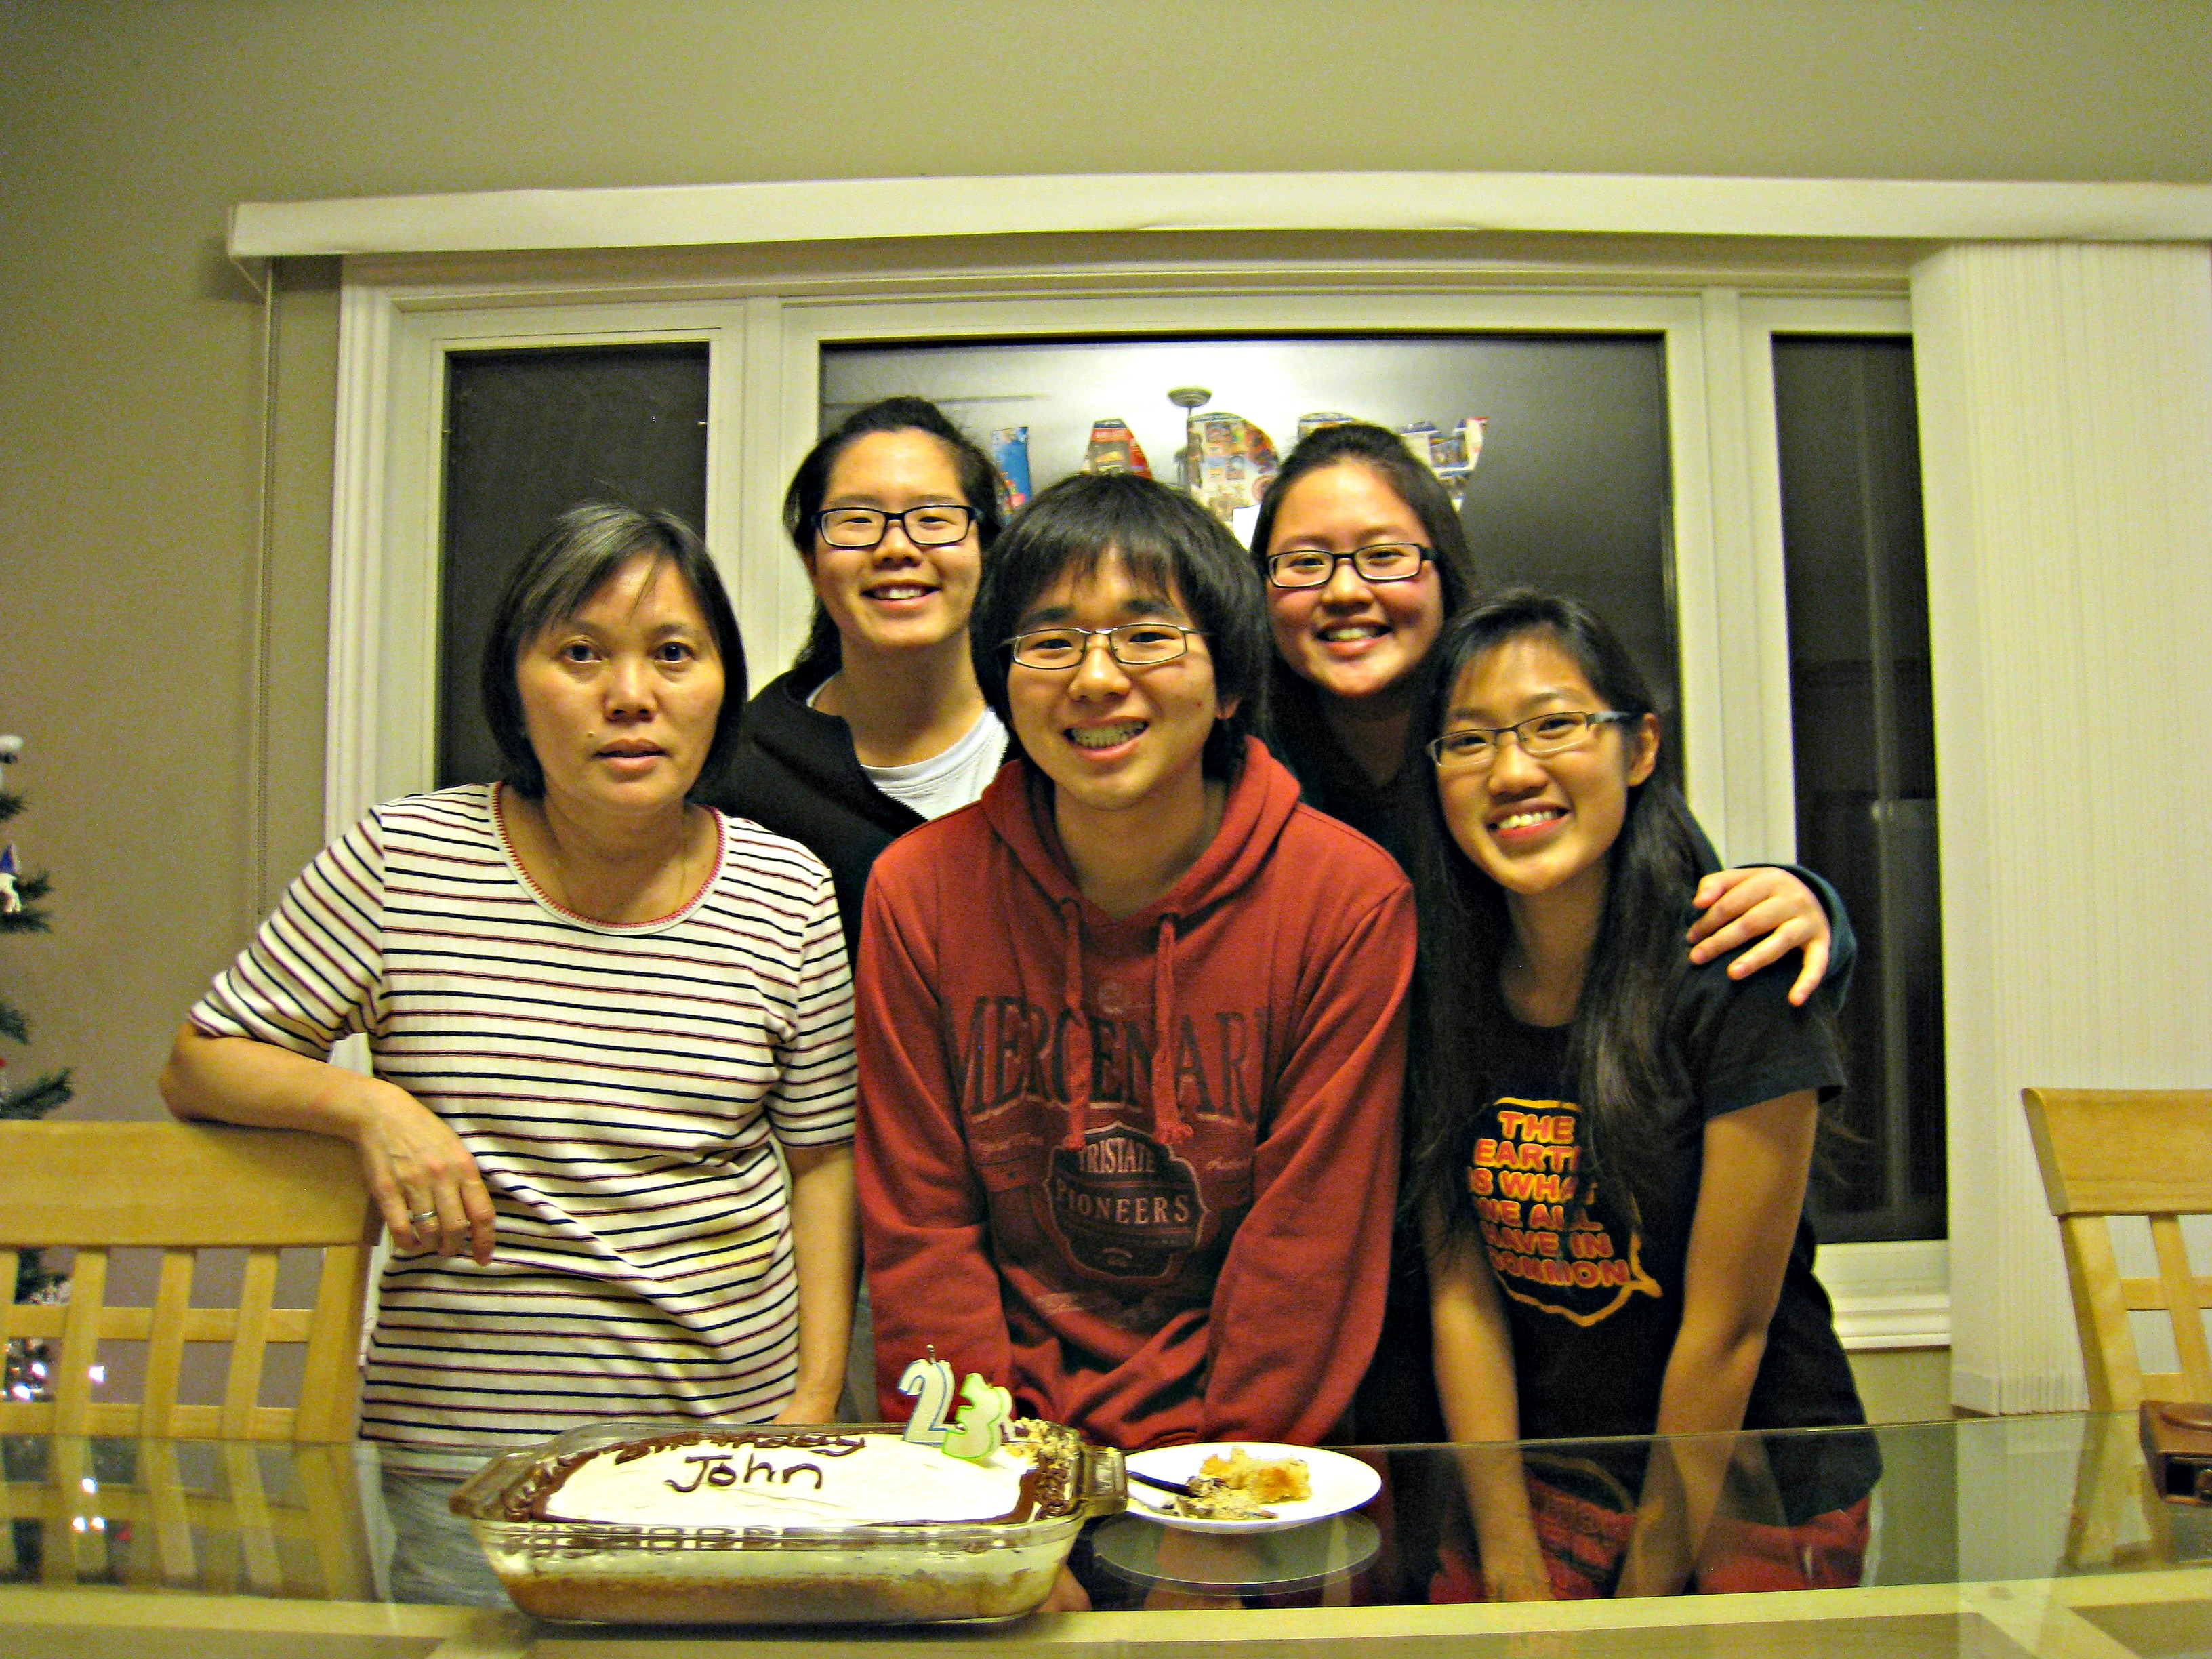 John's 23th Birthday Celebration